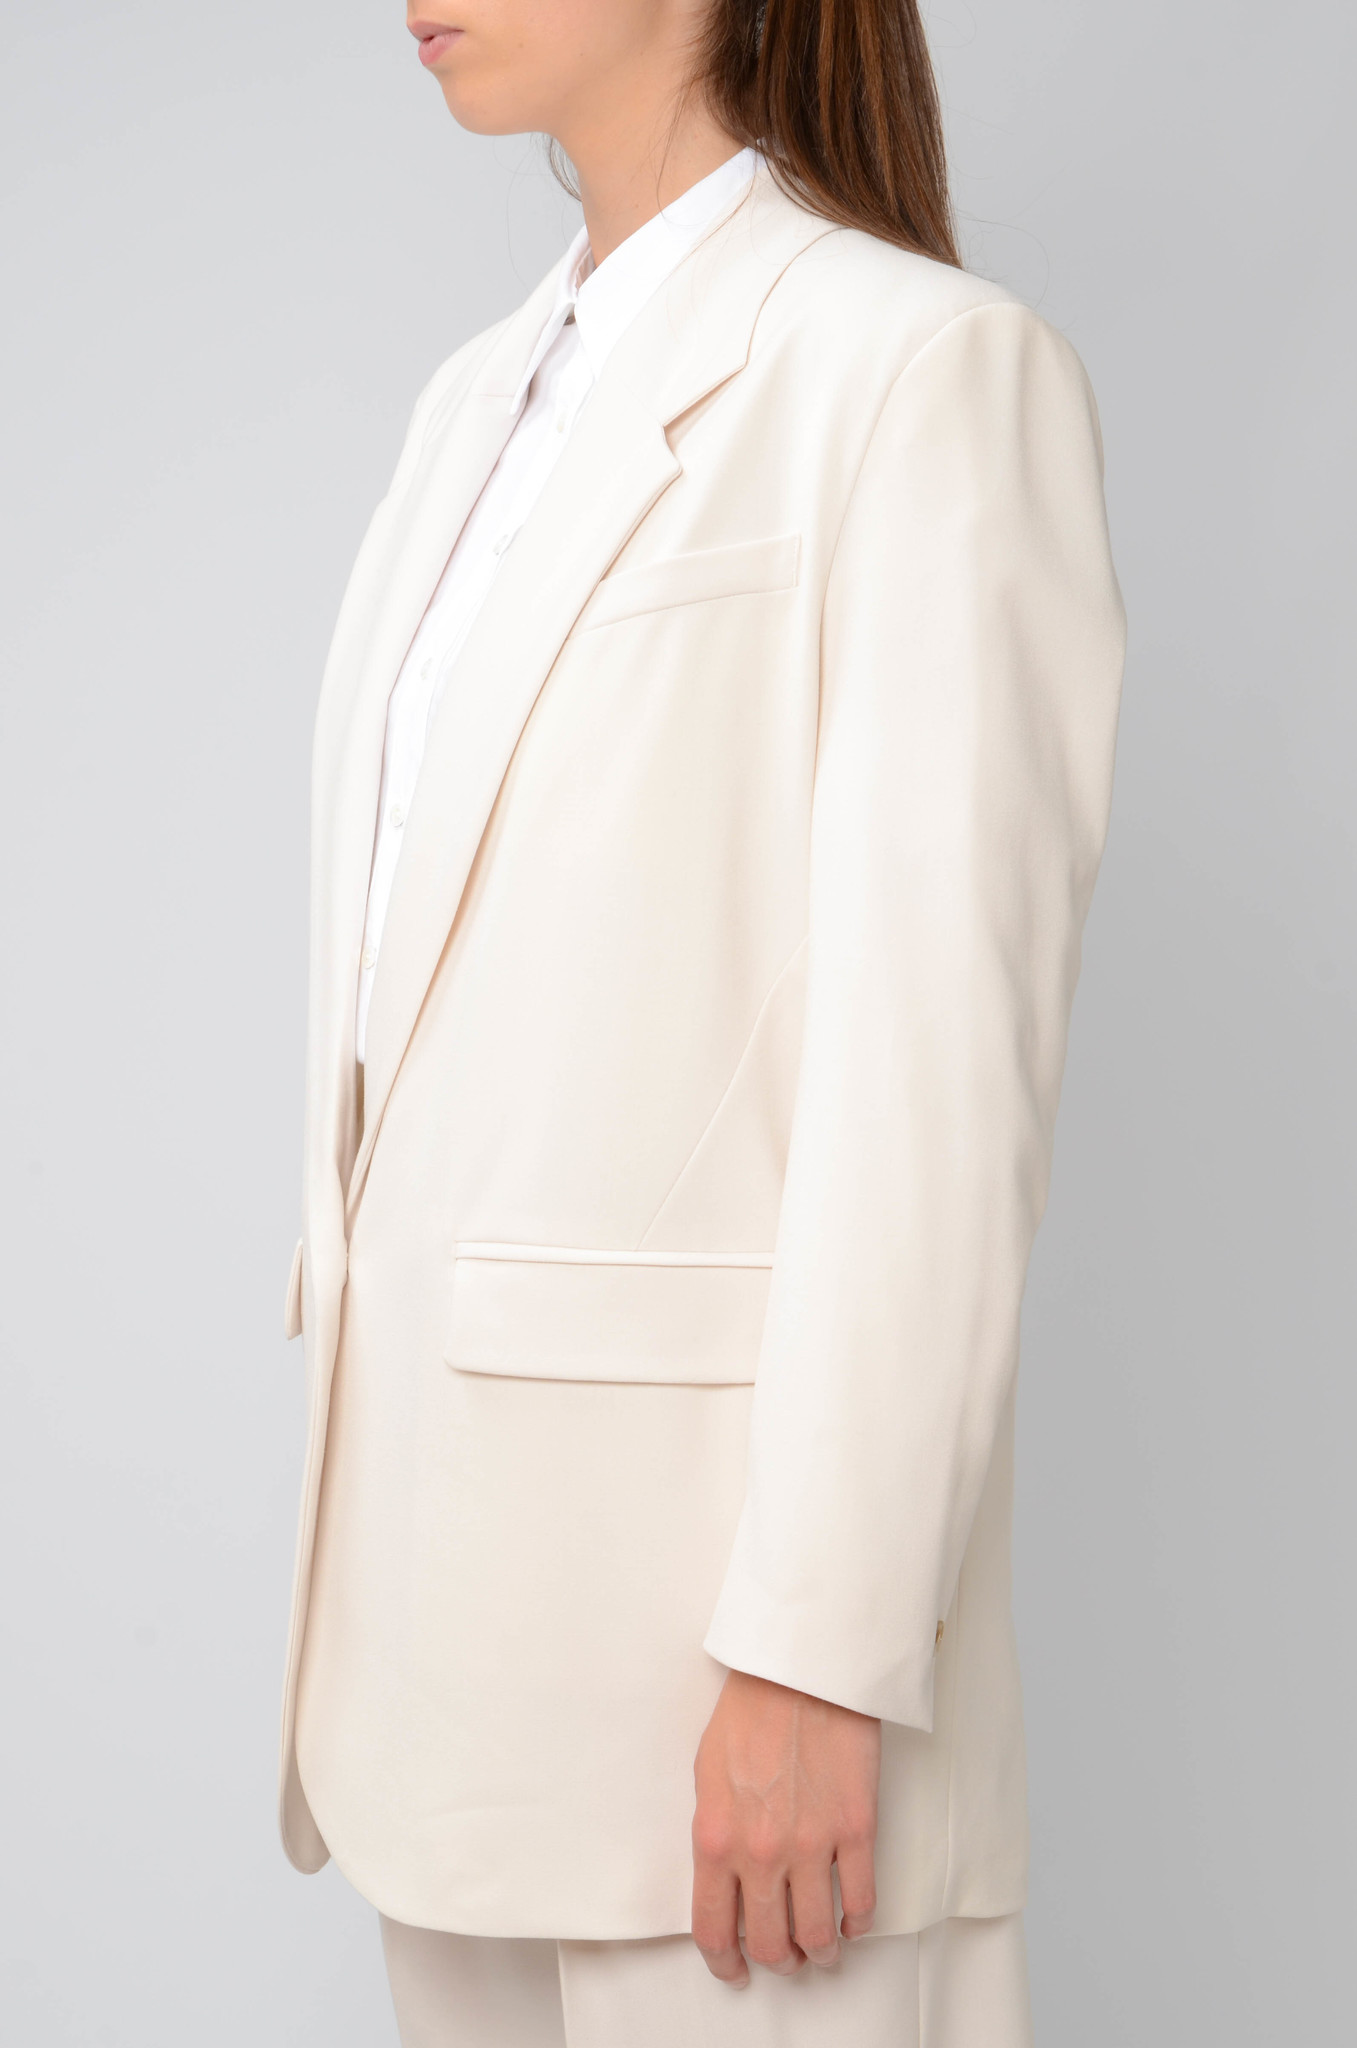 RELAXED BLAZER-3